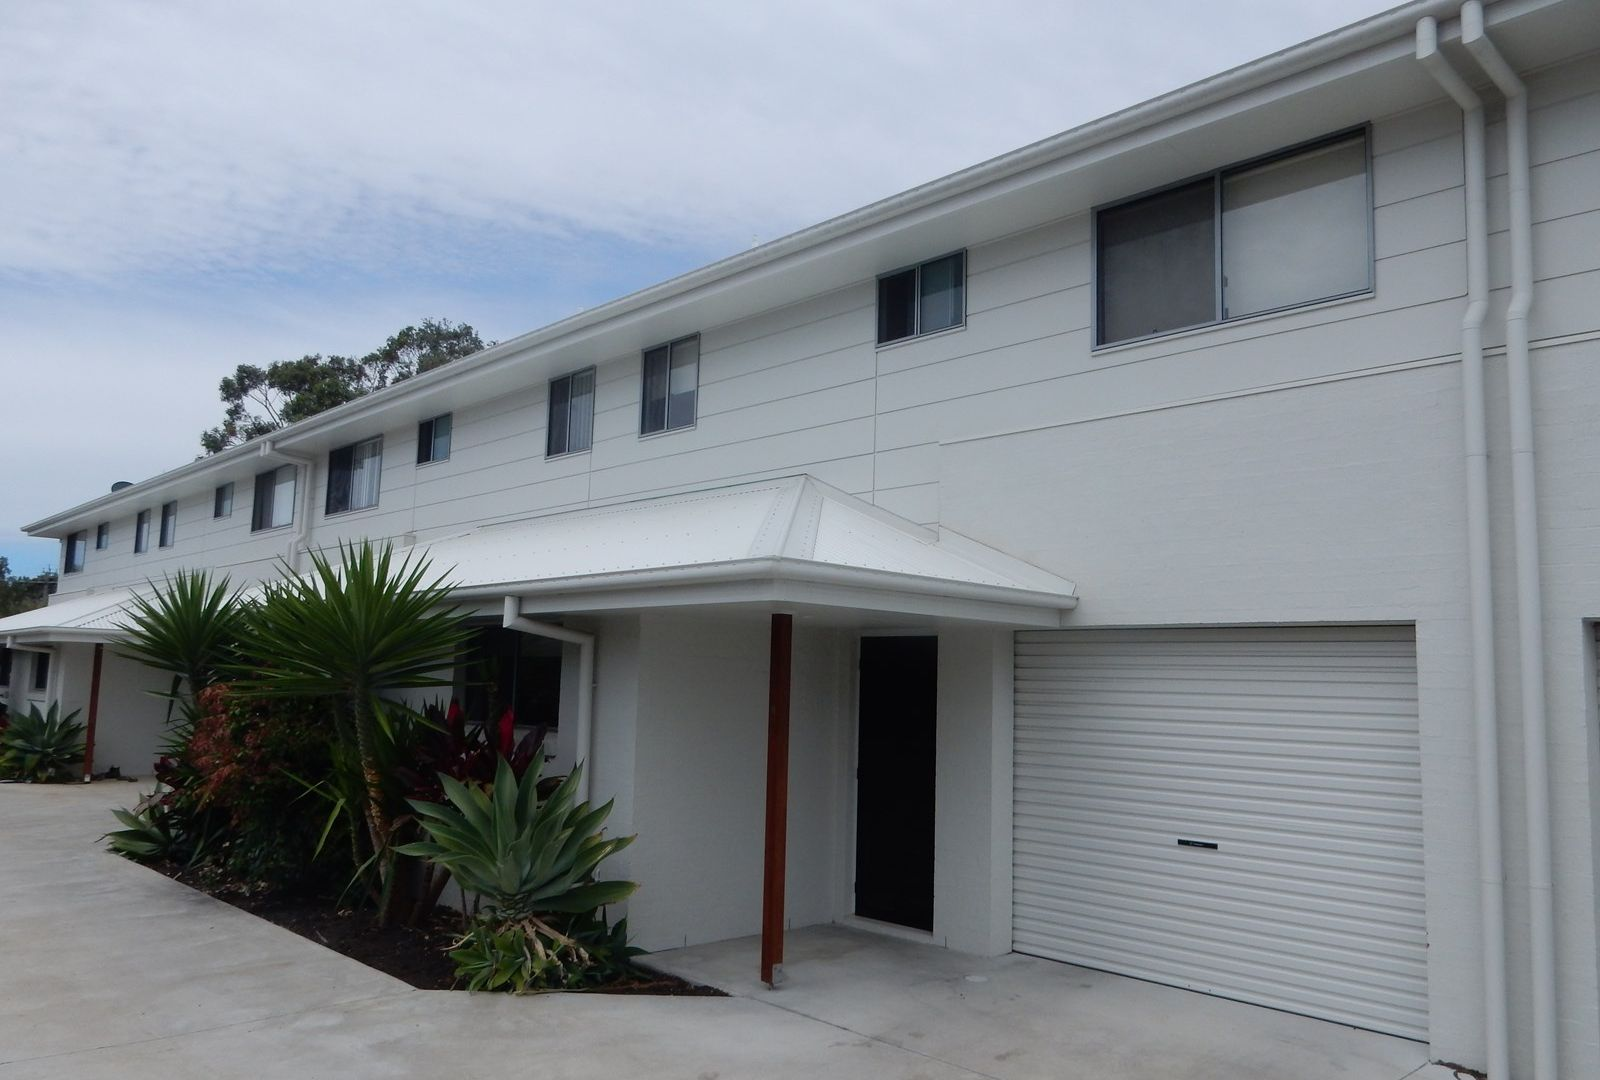 4/65-67 Boultwood Street, Coffs Harbour NSW 2450, Image 1